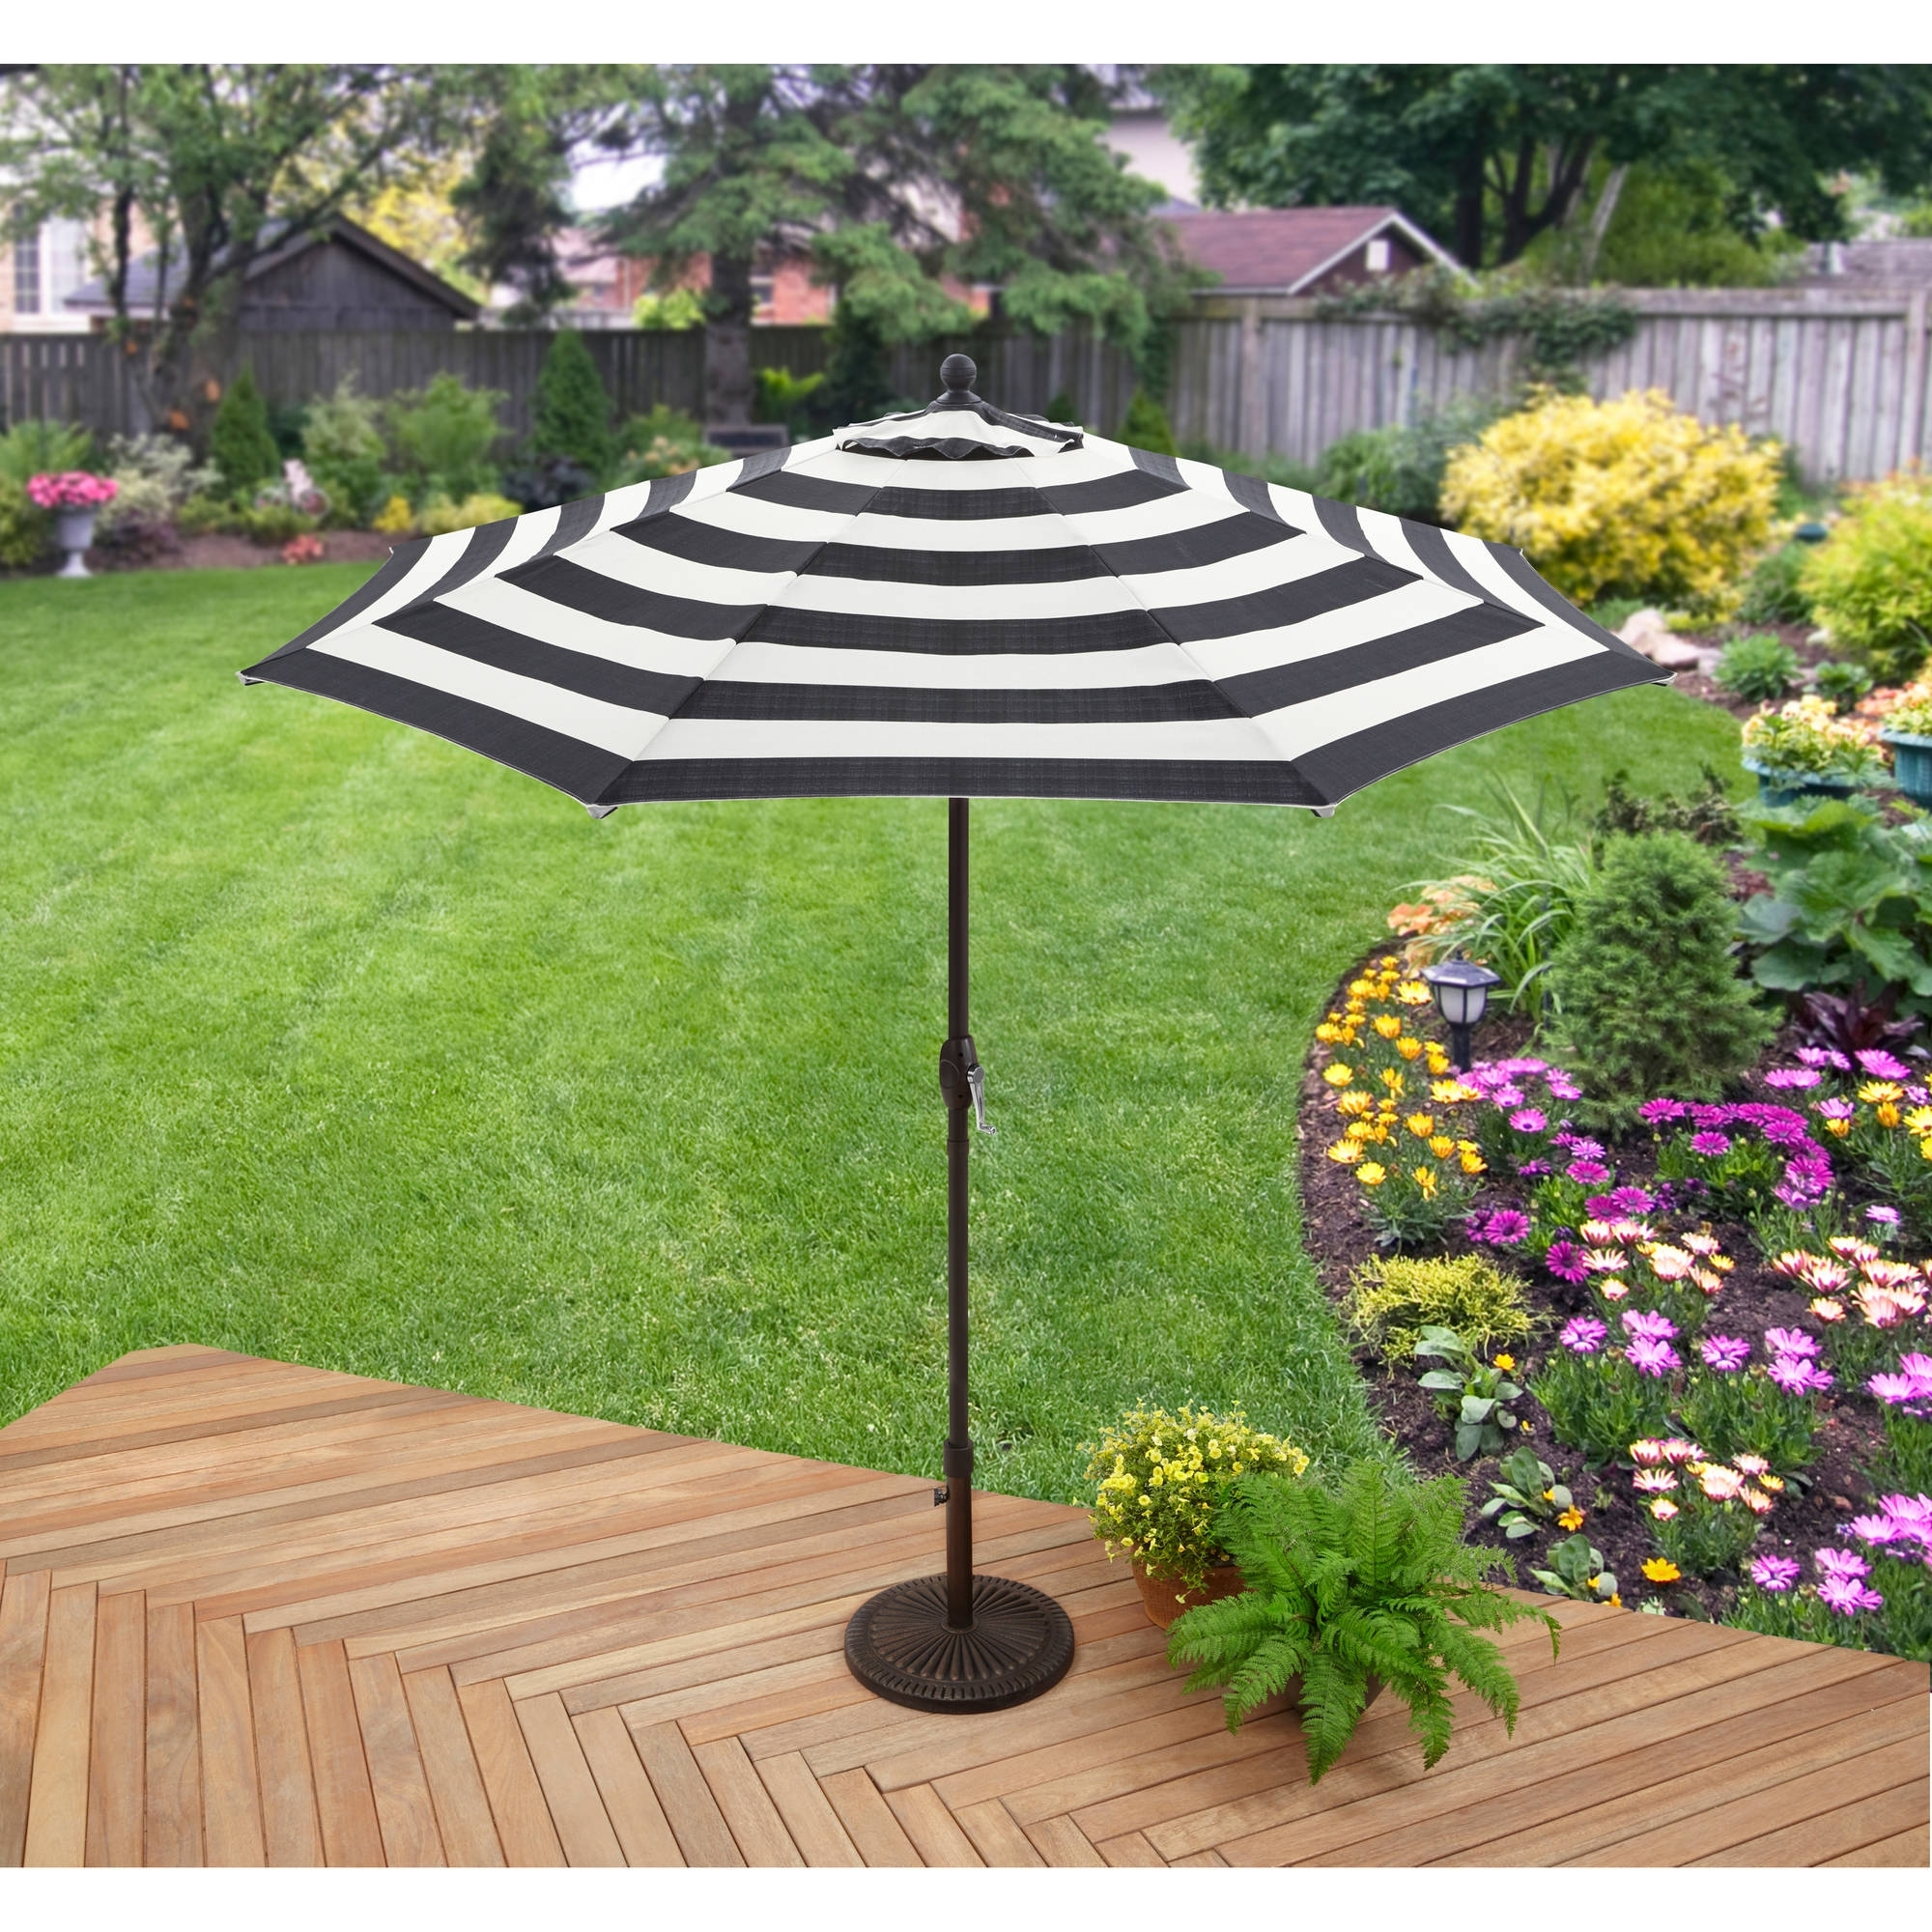 Trendy Gold Coast Patio Umbrellas Intended For Better Homes And Gardens 9' Market Umbrella, Cabana Stripe – Walmart (View 20 of 20)